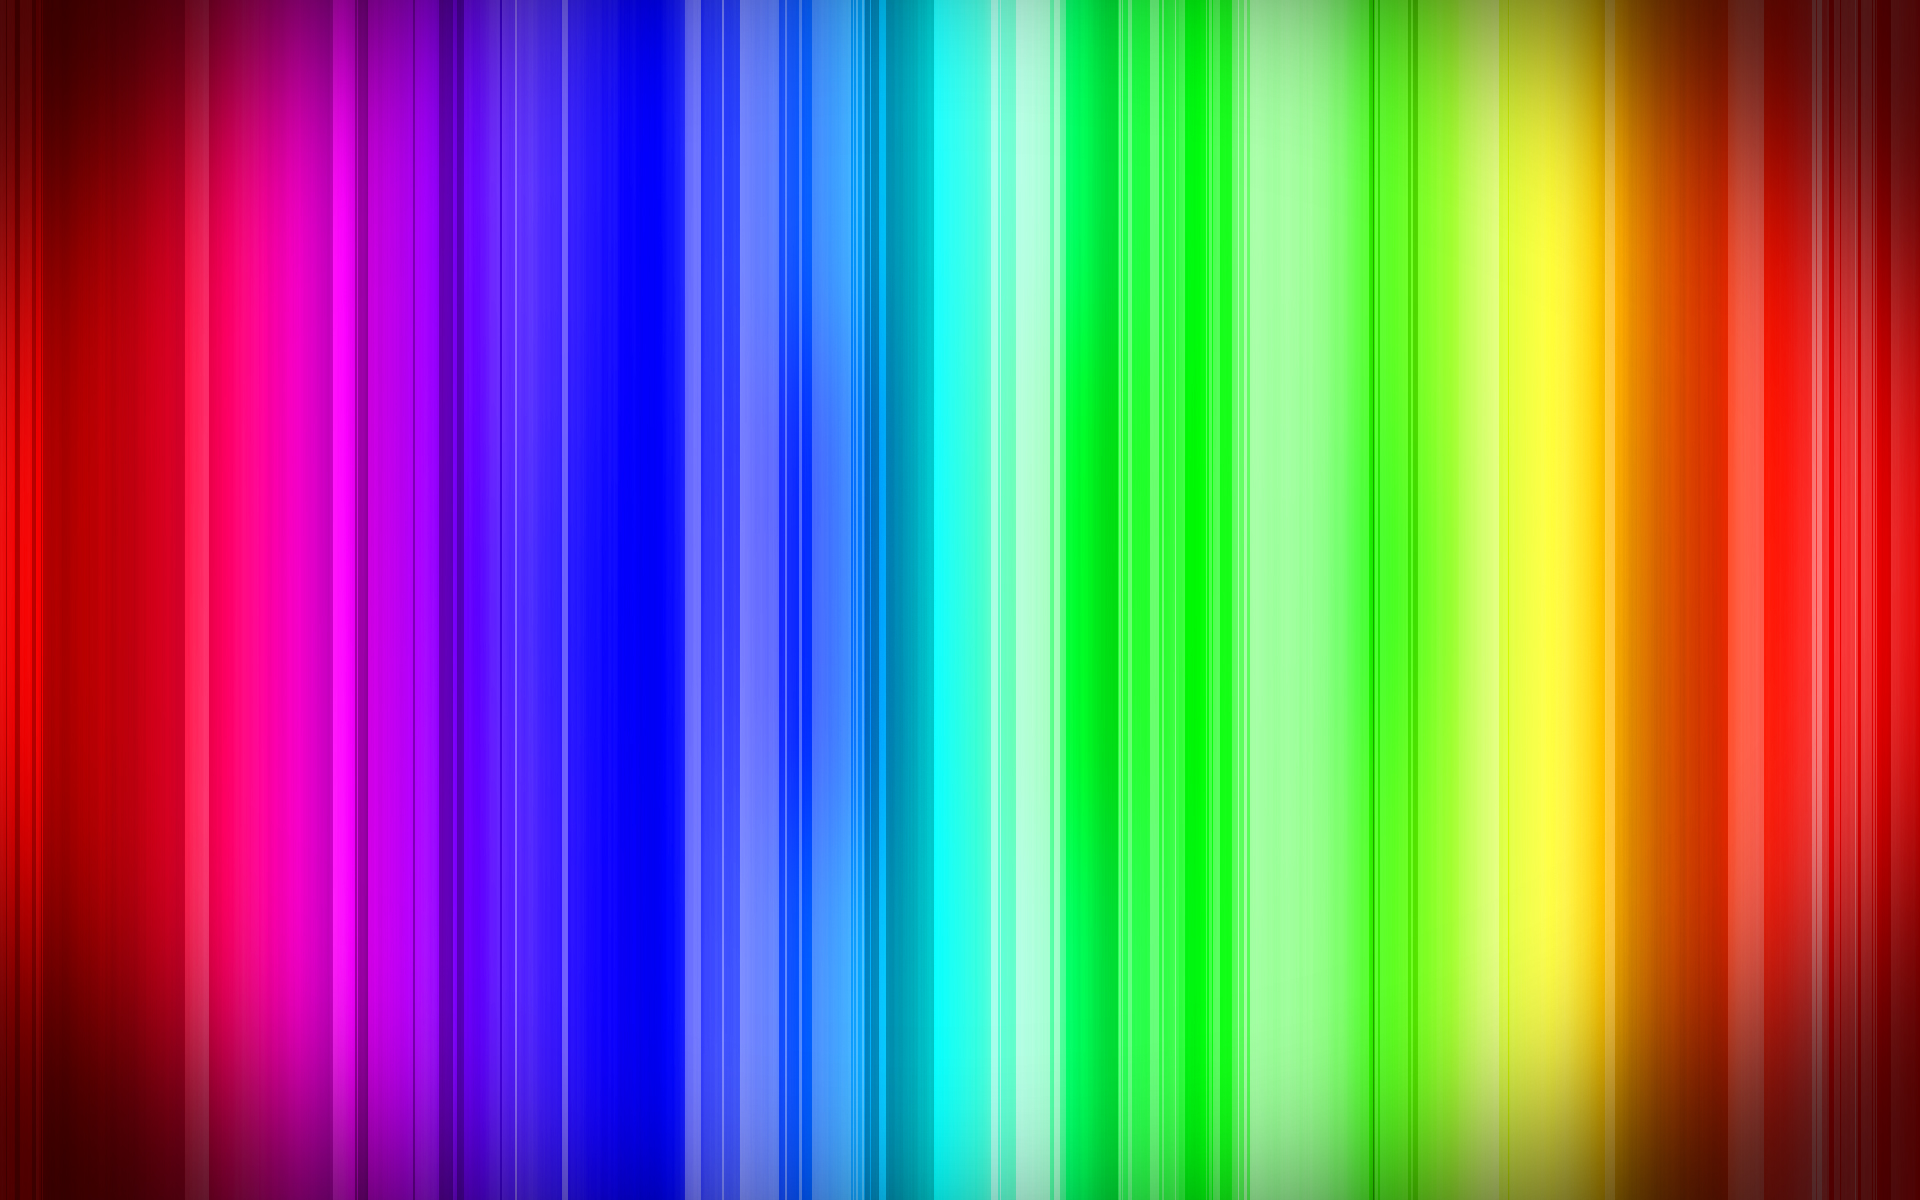 color spectrum full hd wallpaper and background image | 1920x1200